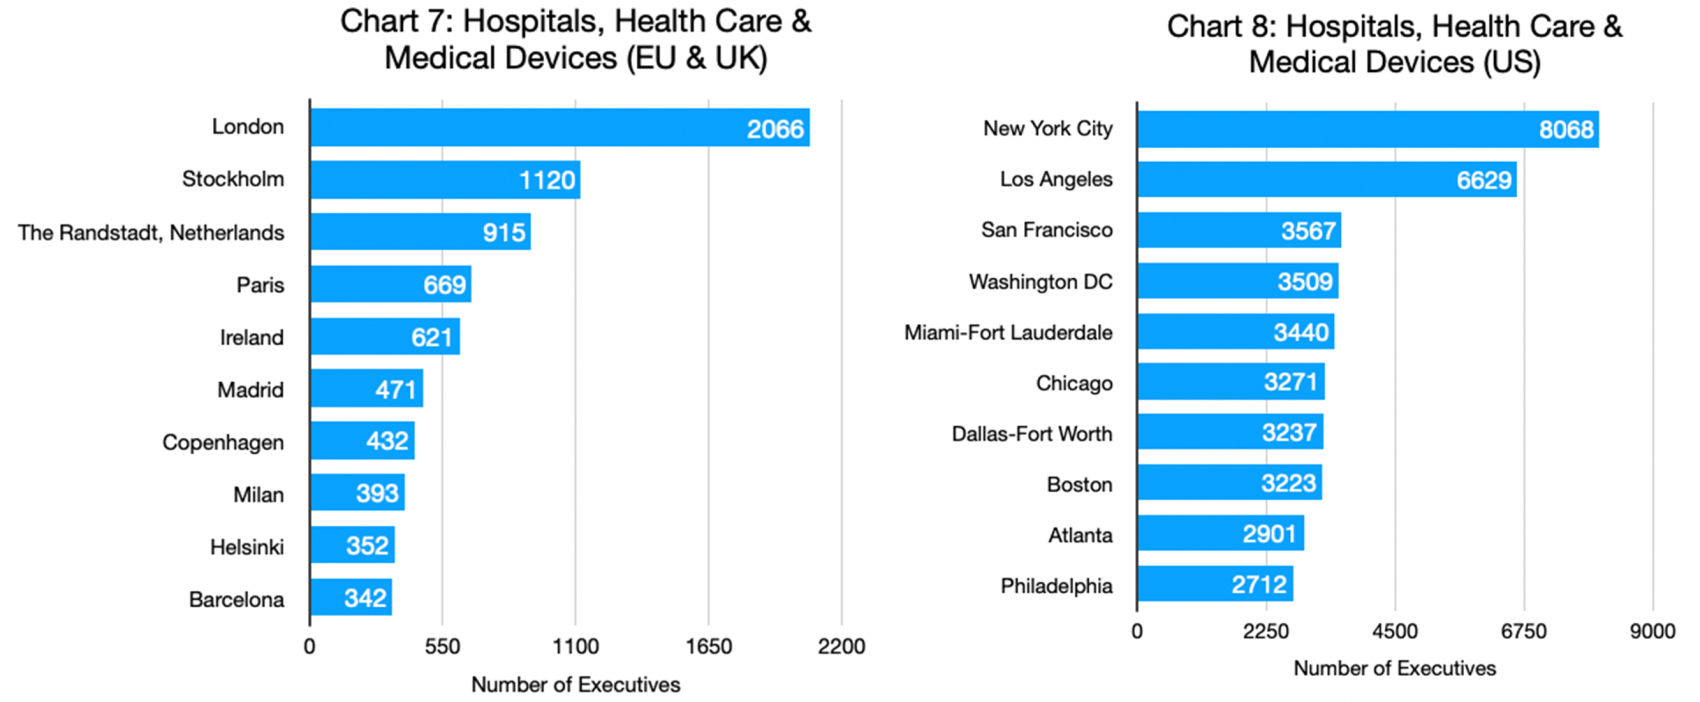 Charts 7 & 8 - Hospitals, Health Care & Medical Devices_EU & UK and US